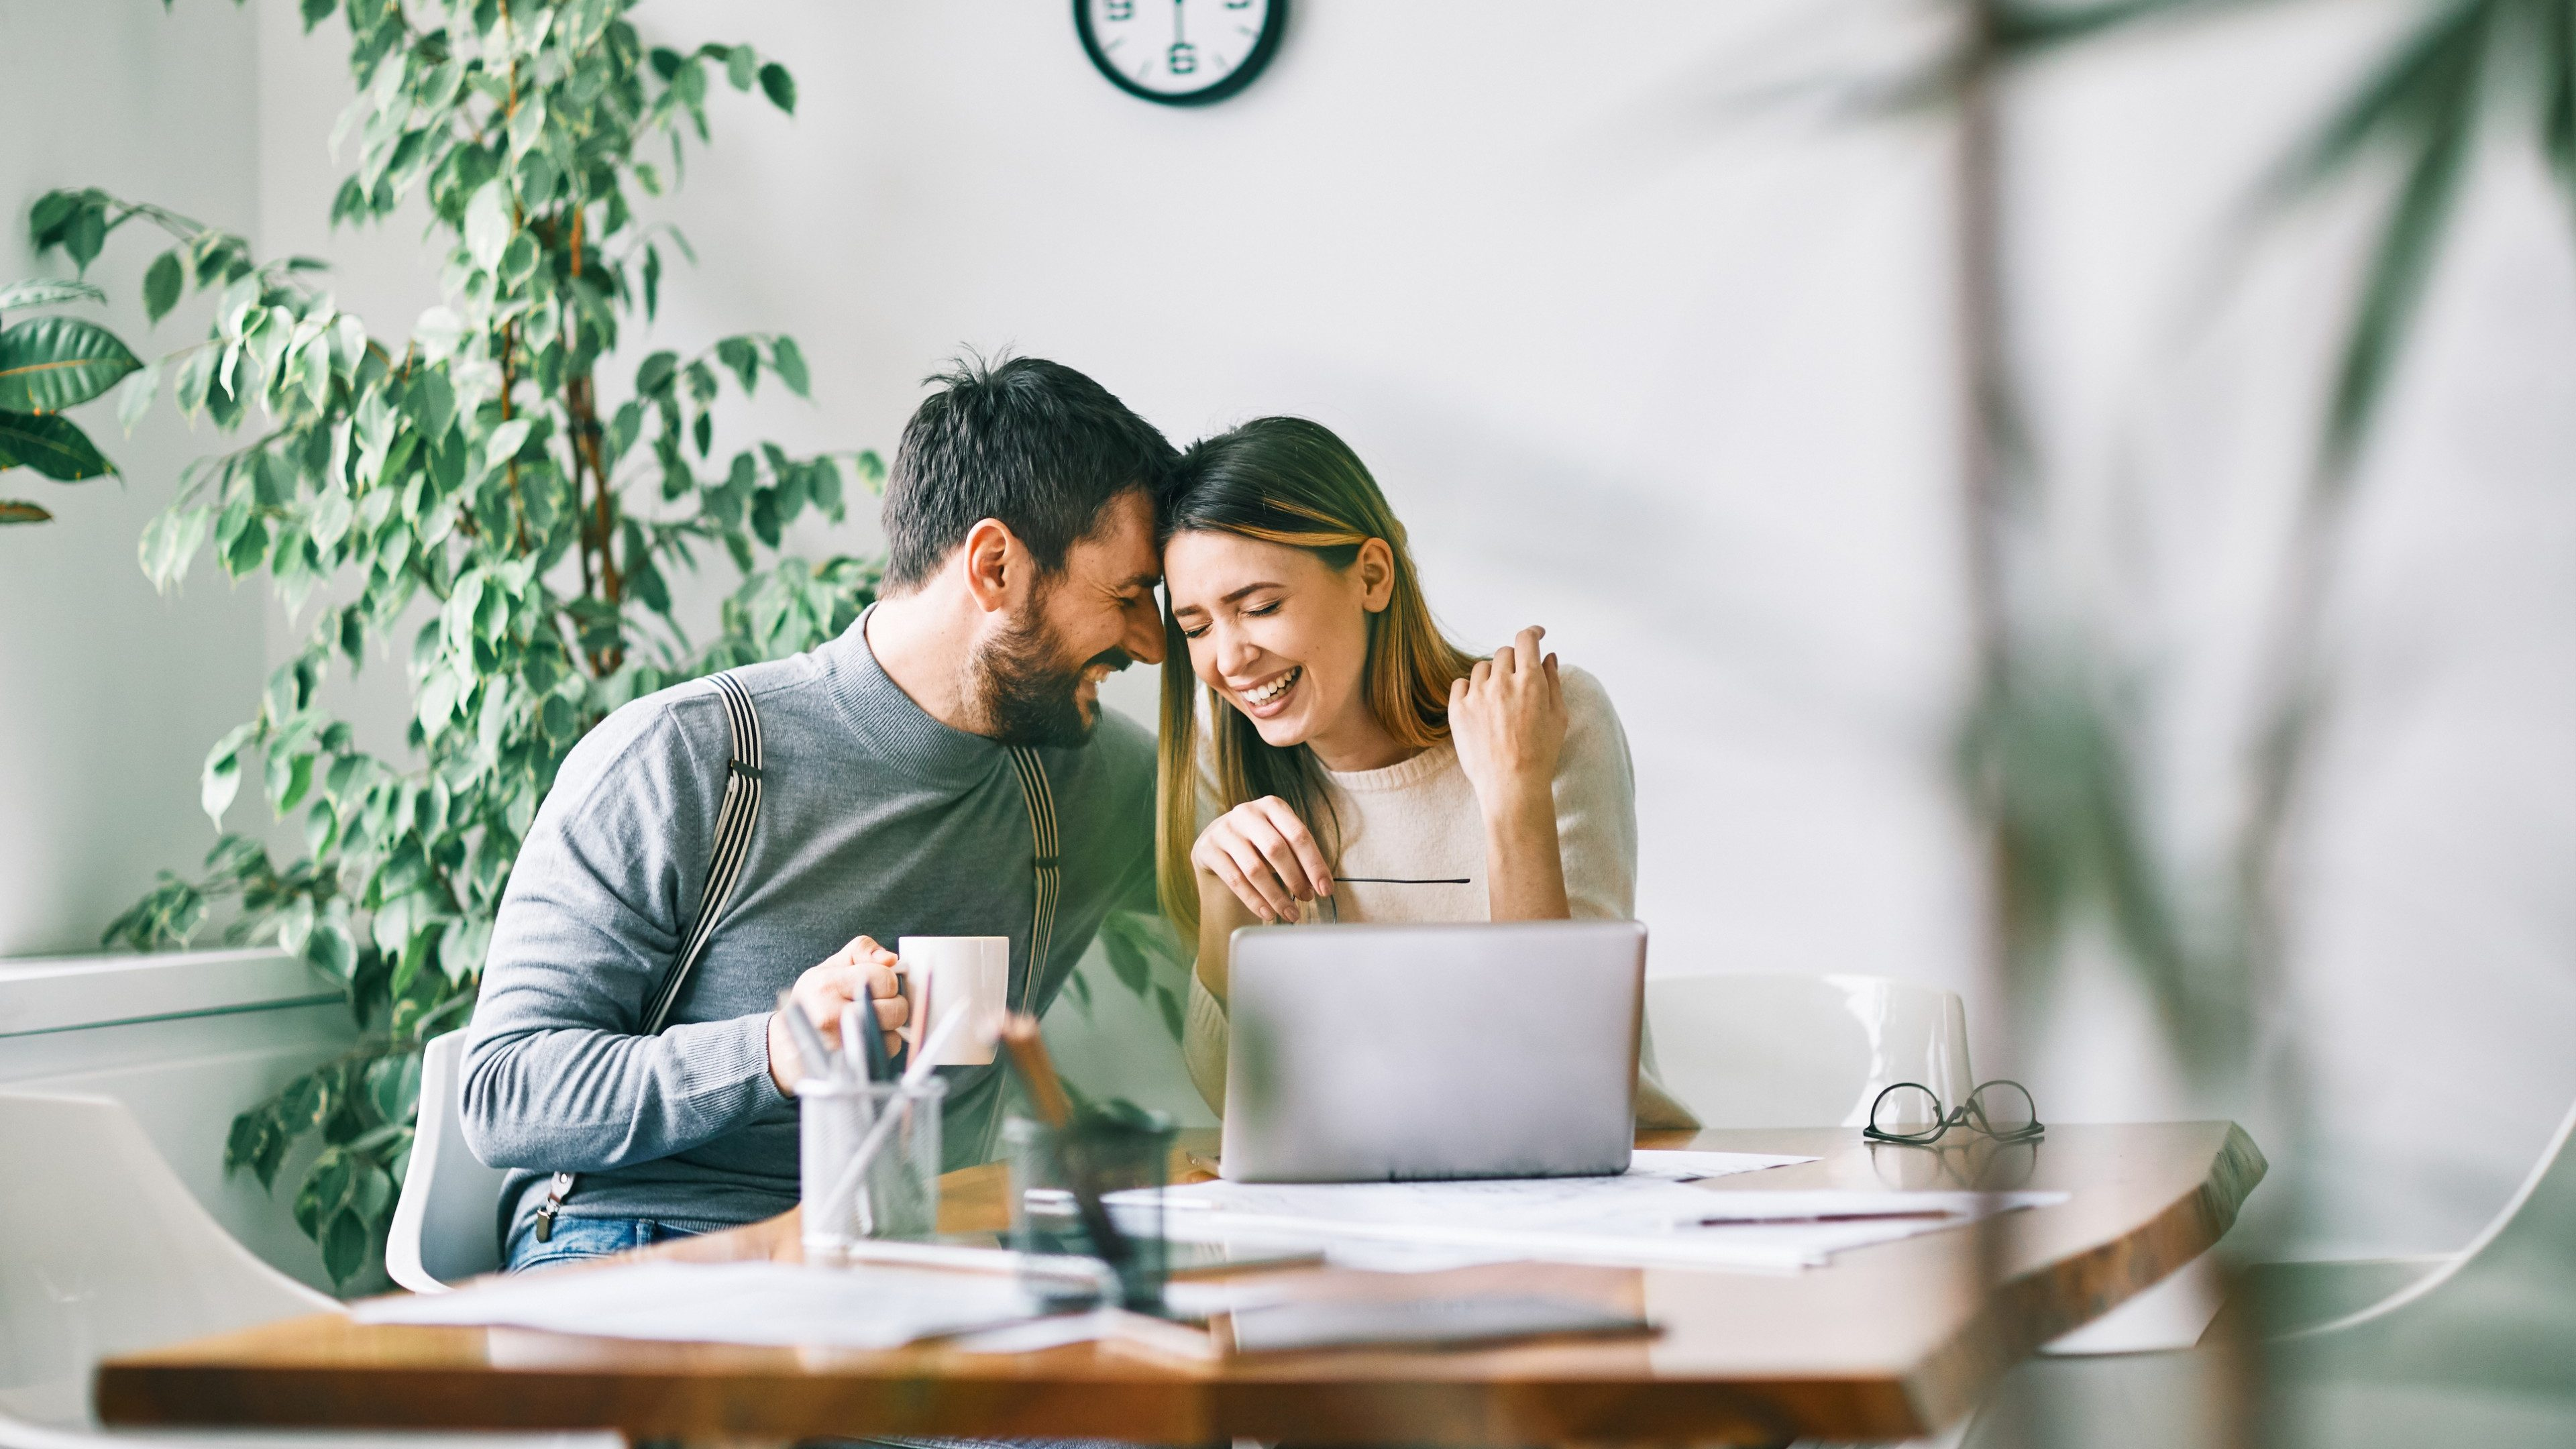 Smiling couple working at home or in the office with laptop